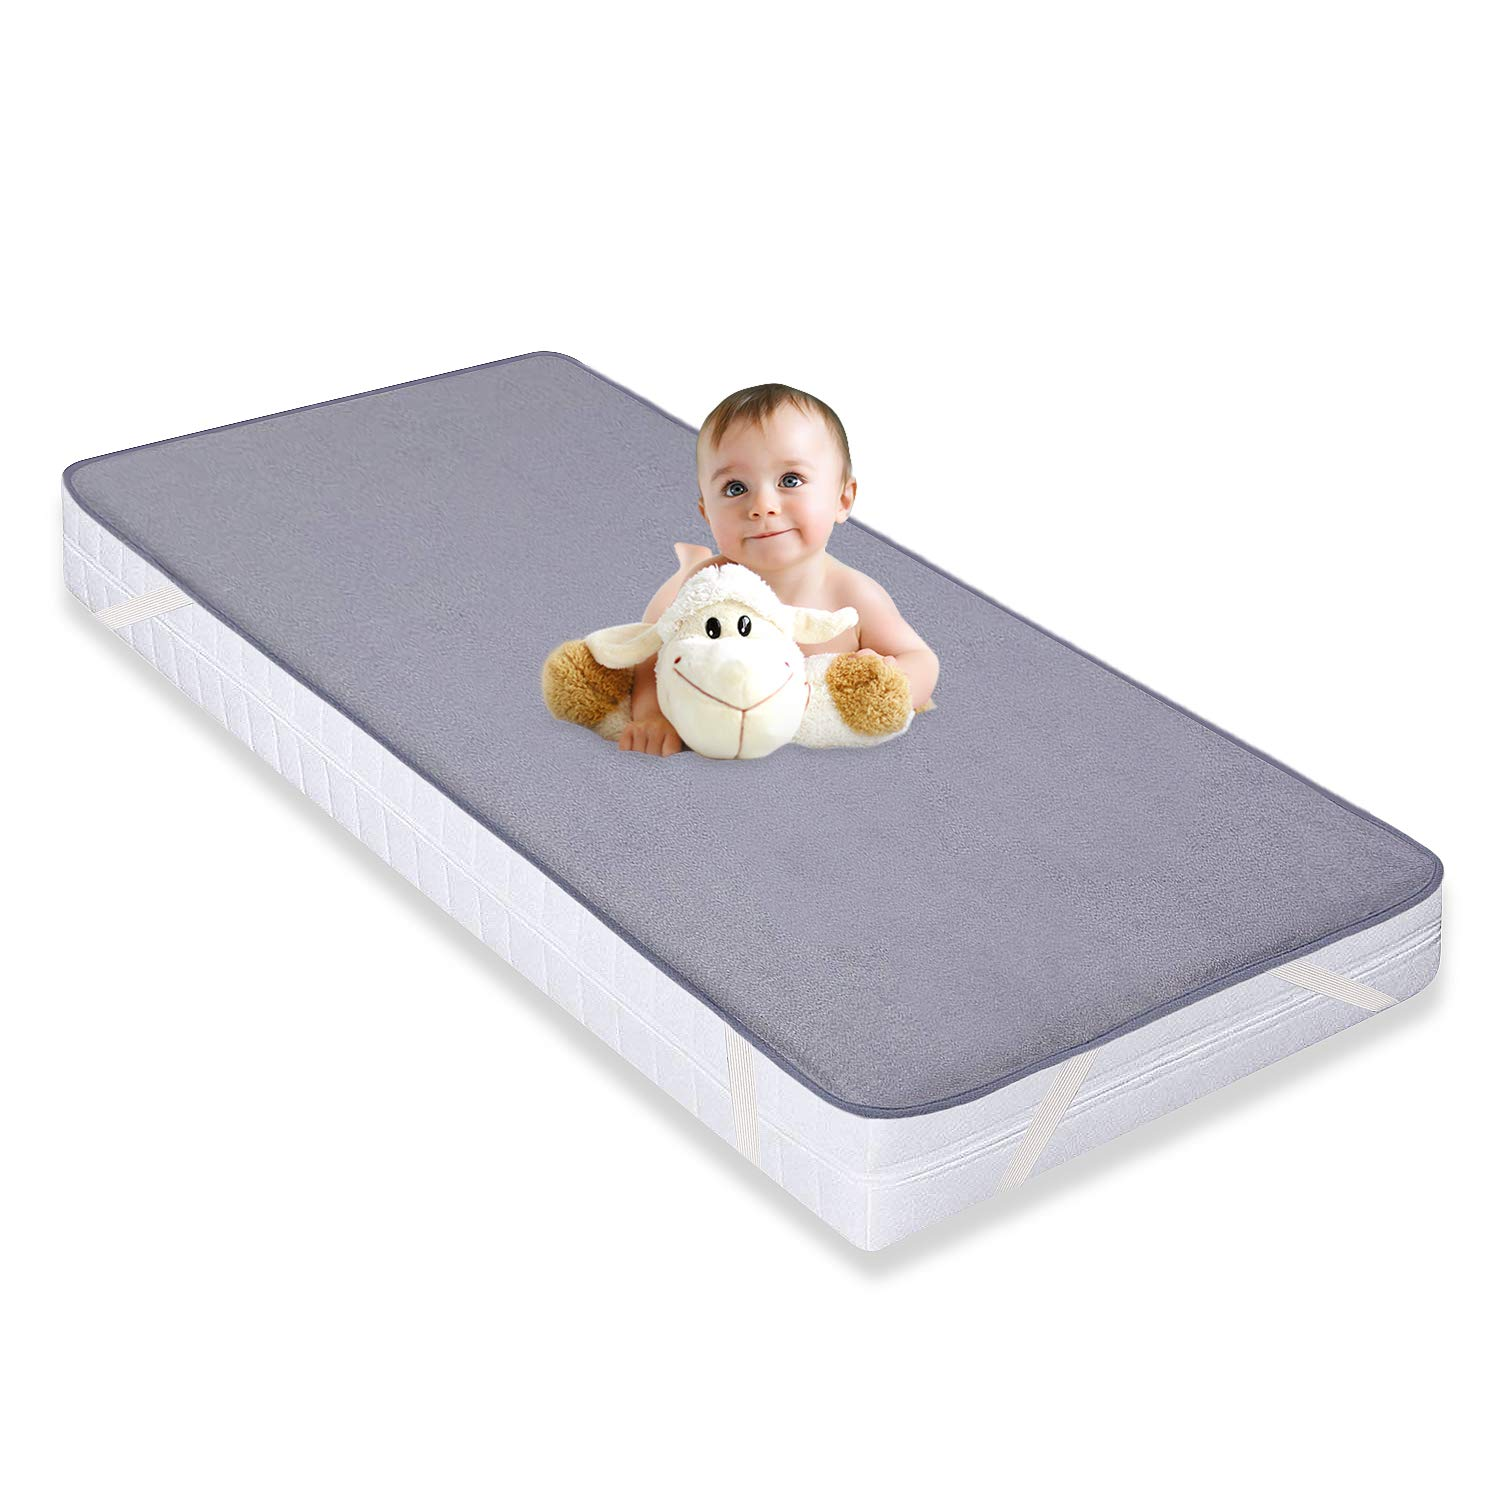 free shipping a4c49 05ee4 Waterproof Mattress Protector Cot Bed Mattress Cover Fitted Bamboo Crib  Sheet 70x140cm for Baby Toddler by YOOFOSS